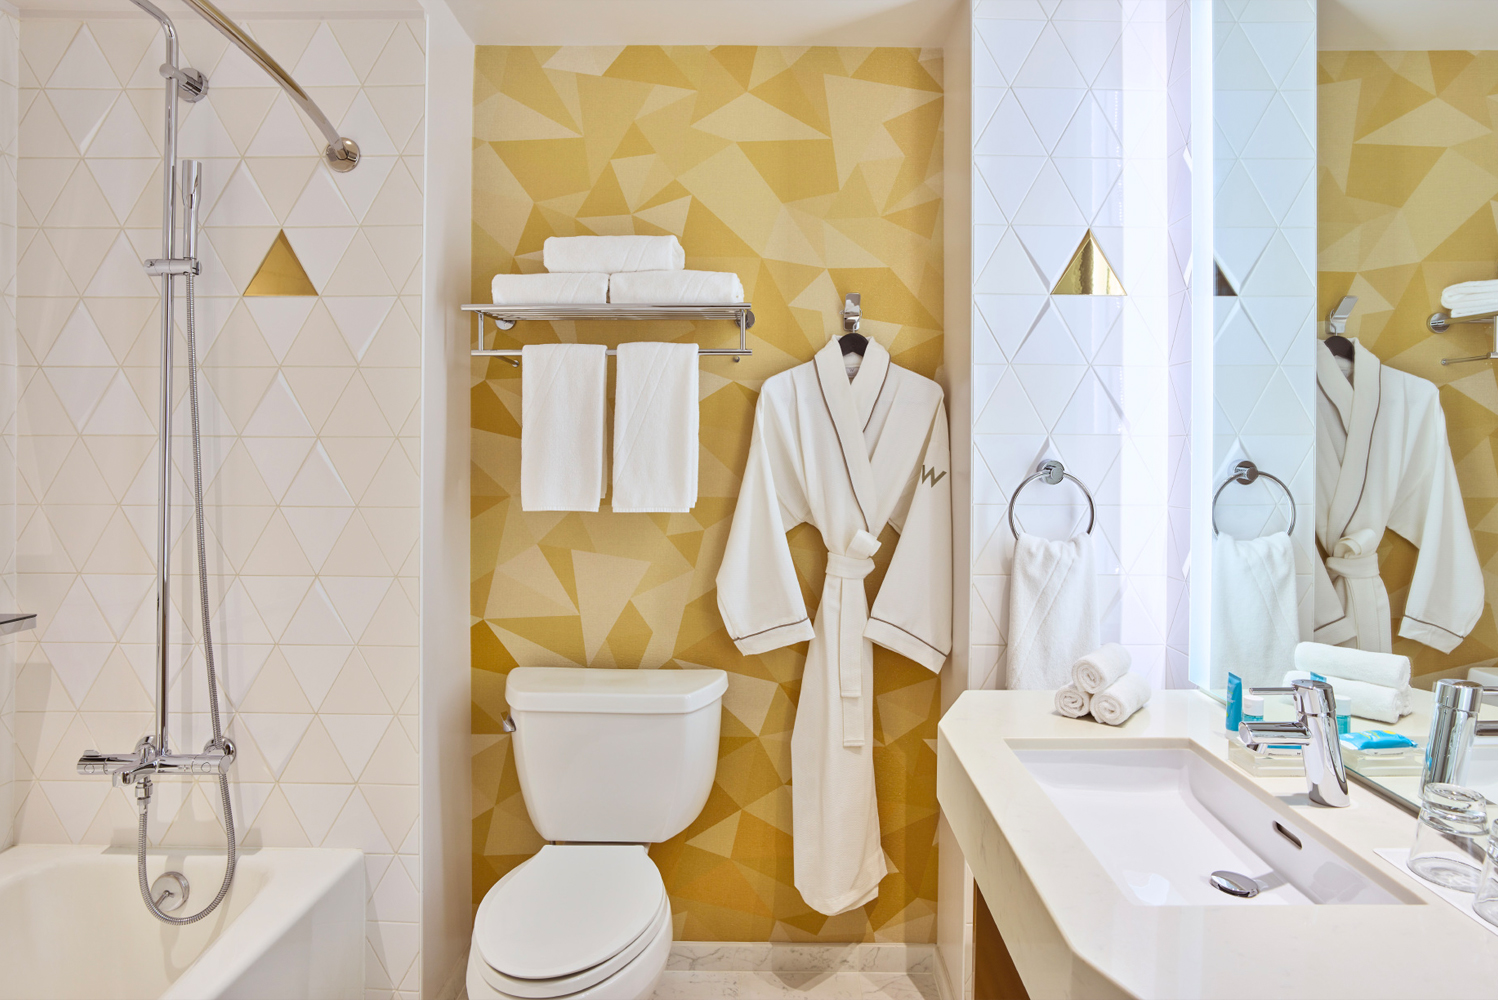 The walls display a gradient interpretation of the area's fog patterns with subtle touches of gold dust in the wallpaper.